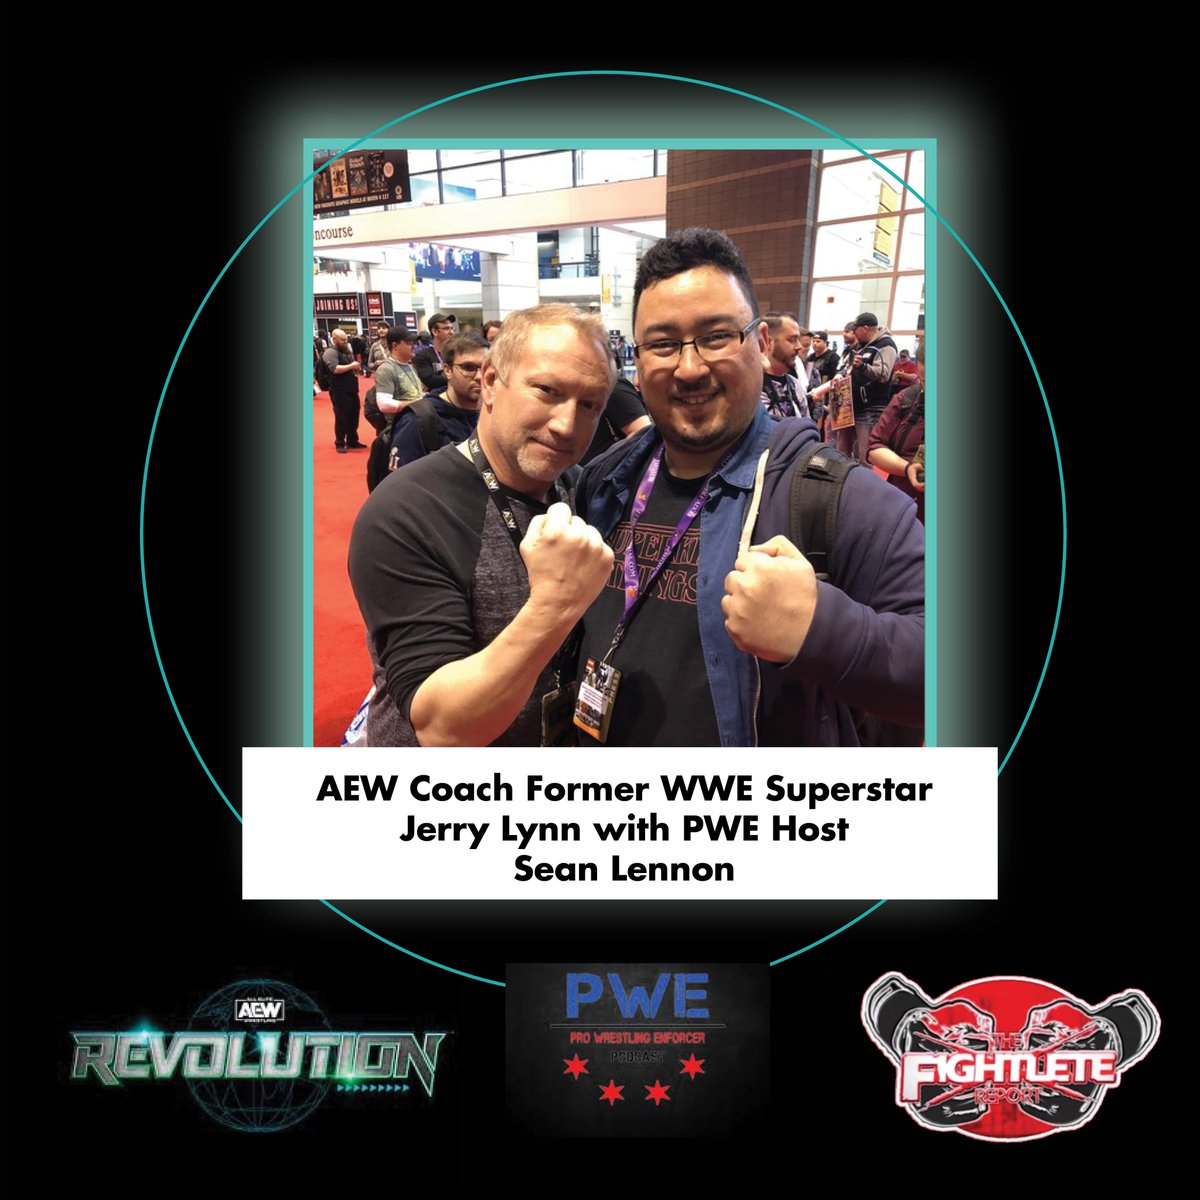 Check out our coverage of #AEWRevolution and the latest in the world of #prowrestling at ! @itsjerrylynn   #AEW #coach #JerryLynn #WWE #prowrestling #ProWrestlingEnforcer #boxing #MMATwitter #Fightlete #MBJProductions